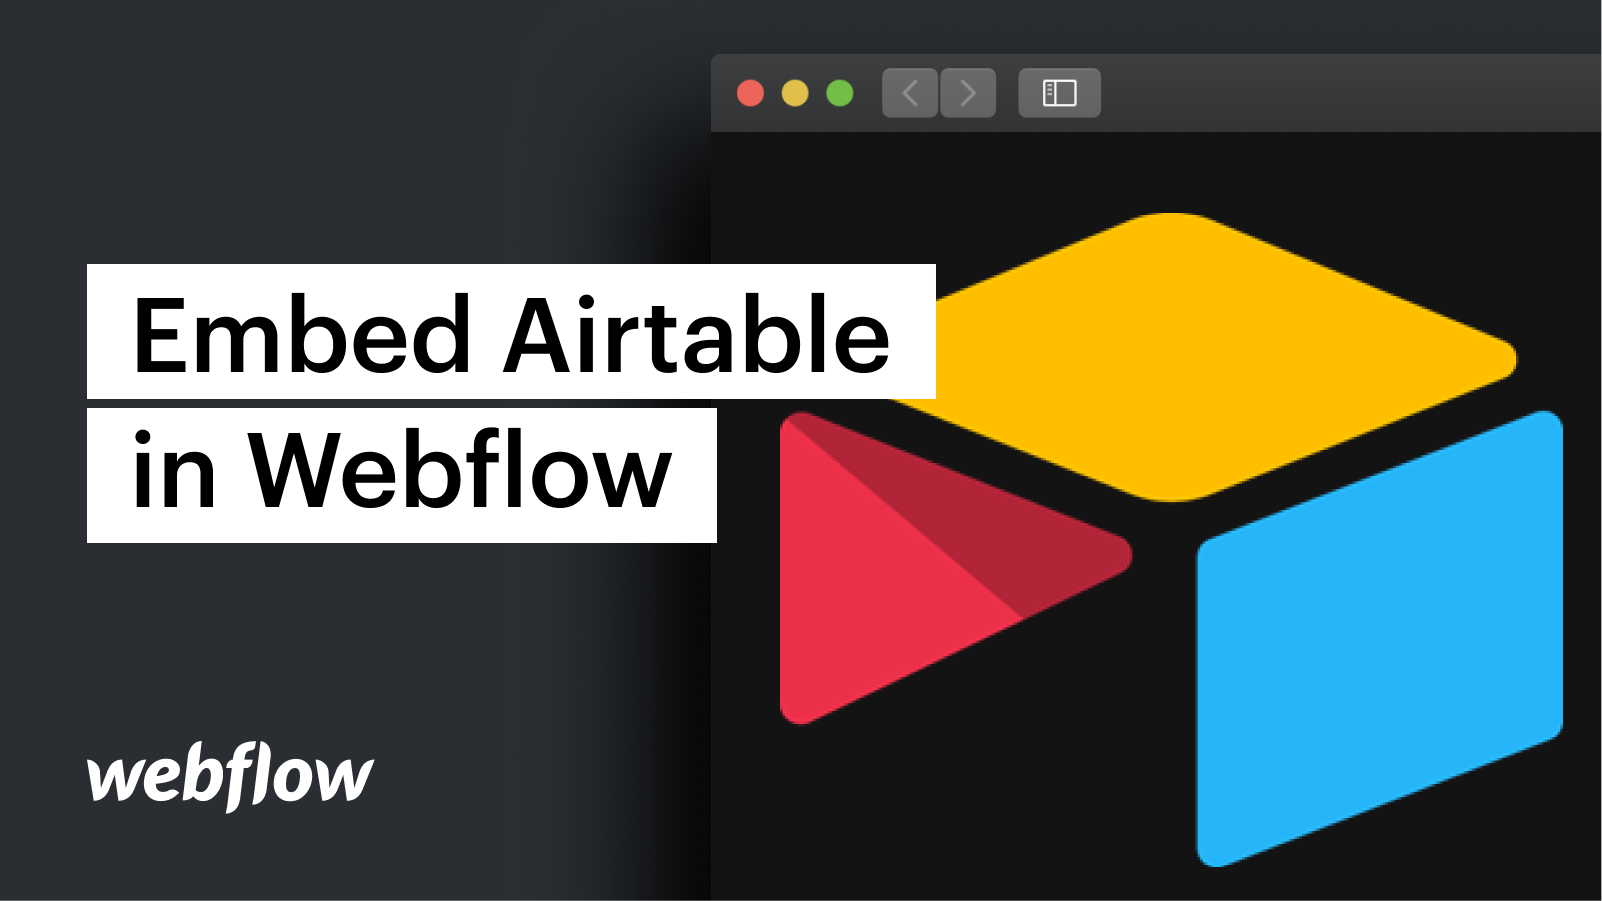 Embed an Airtable form in Webflow